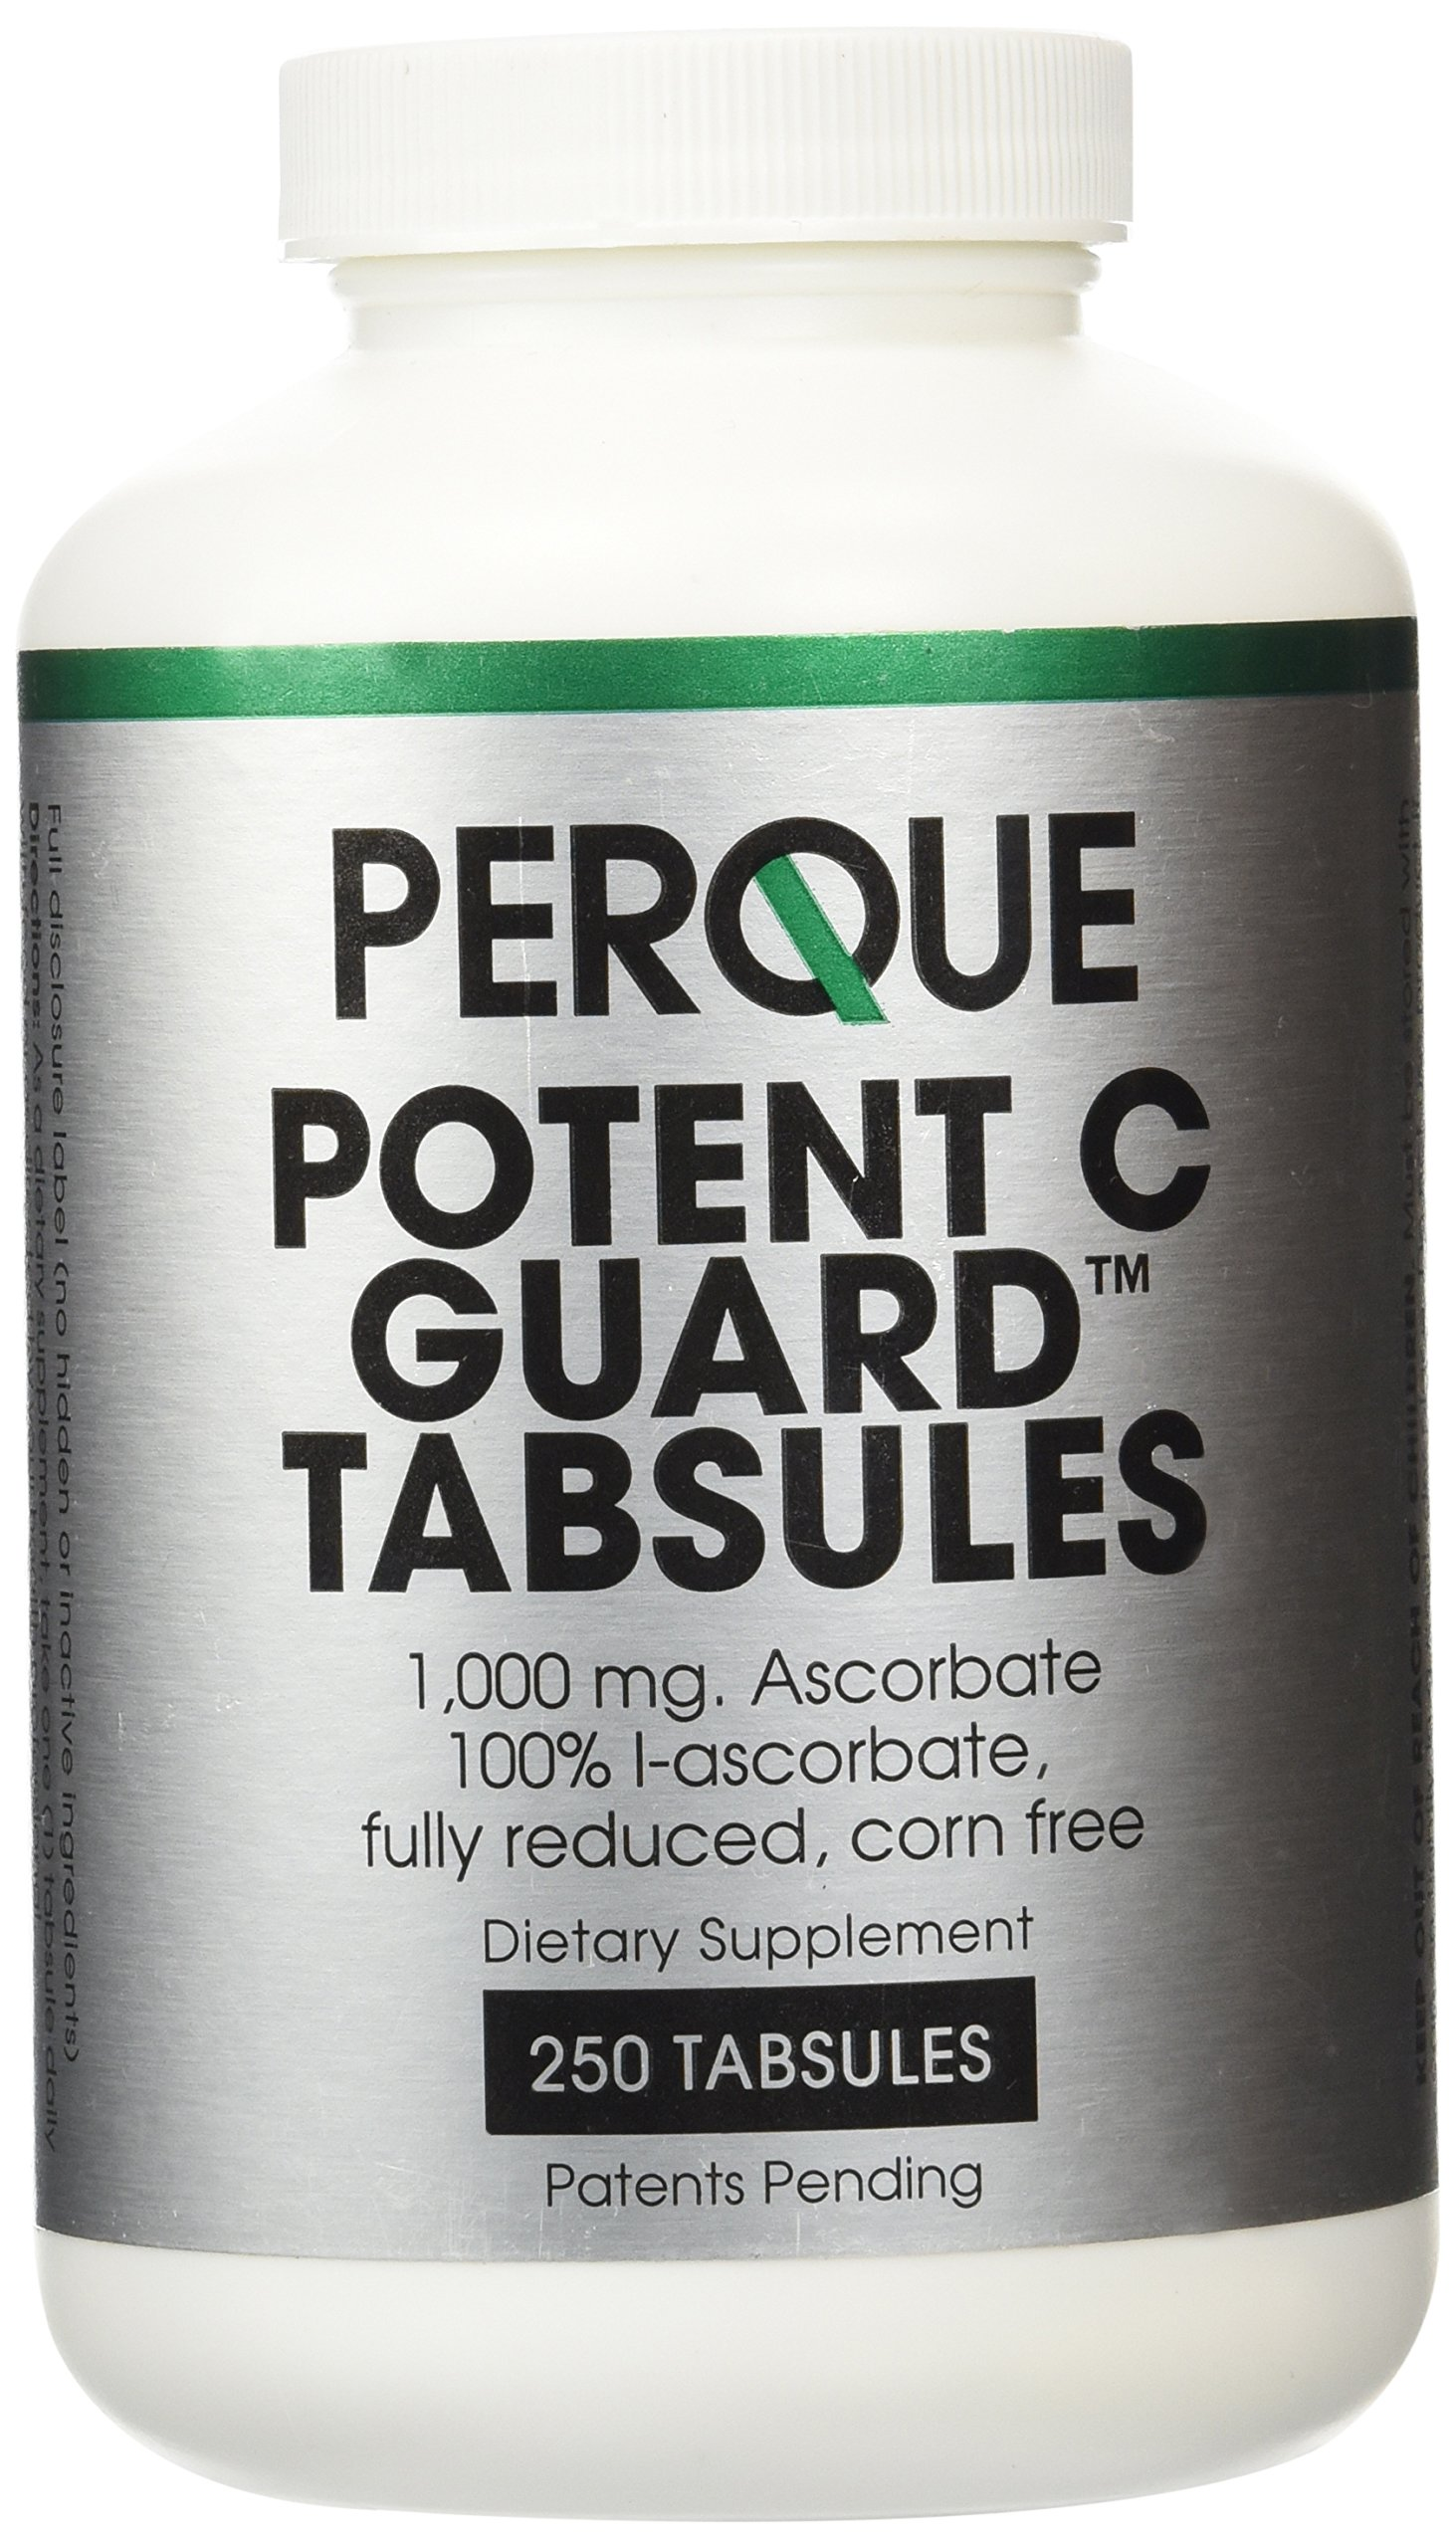 PERQUE- Potent C Guard 1000 mg 250 tabs